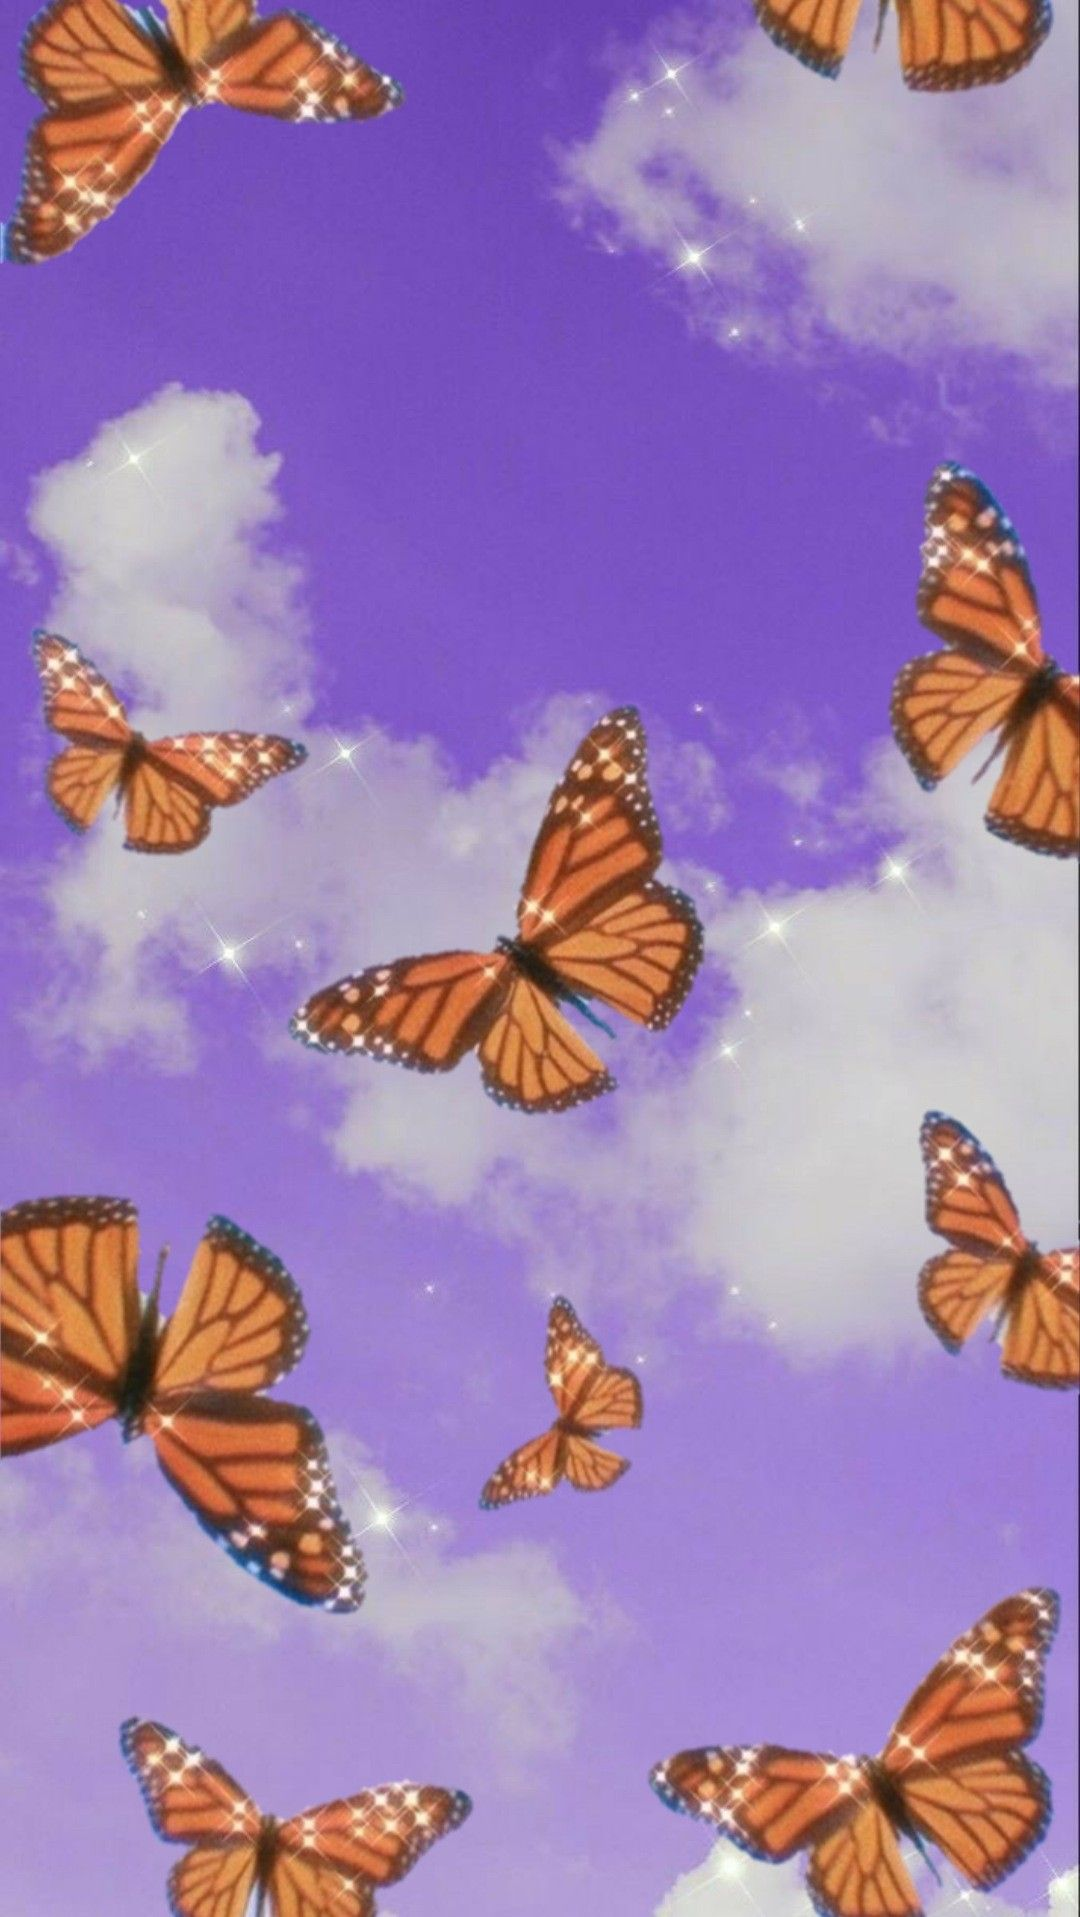 Pin By Kerry Anne On Screen Butterfly Wallpaper Iphone Purple Wallpaper Iphone Purple Wallpaper